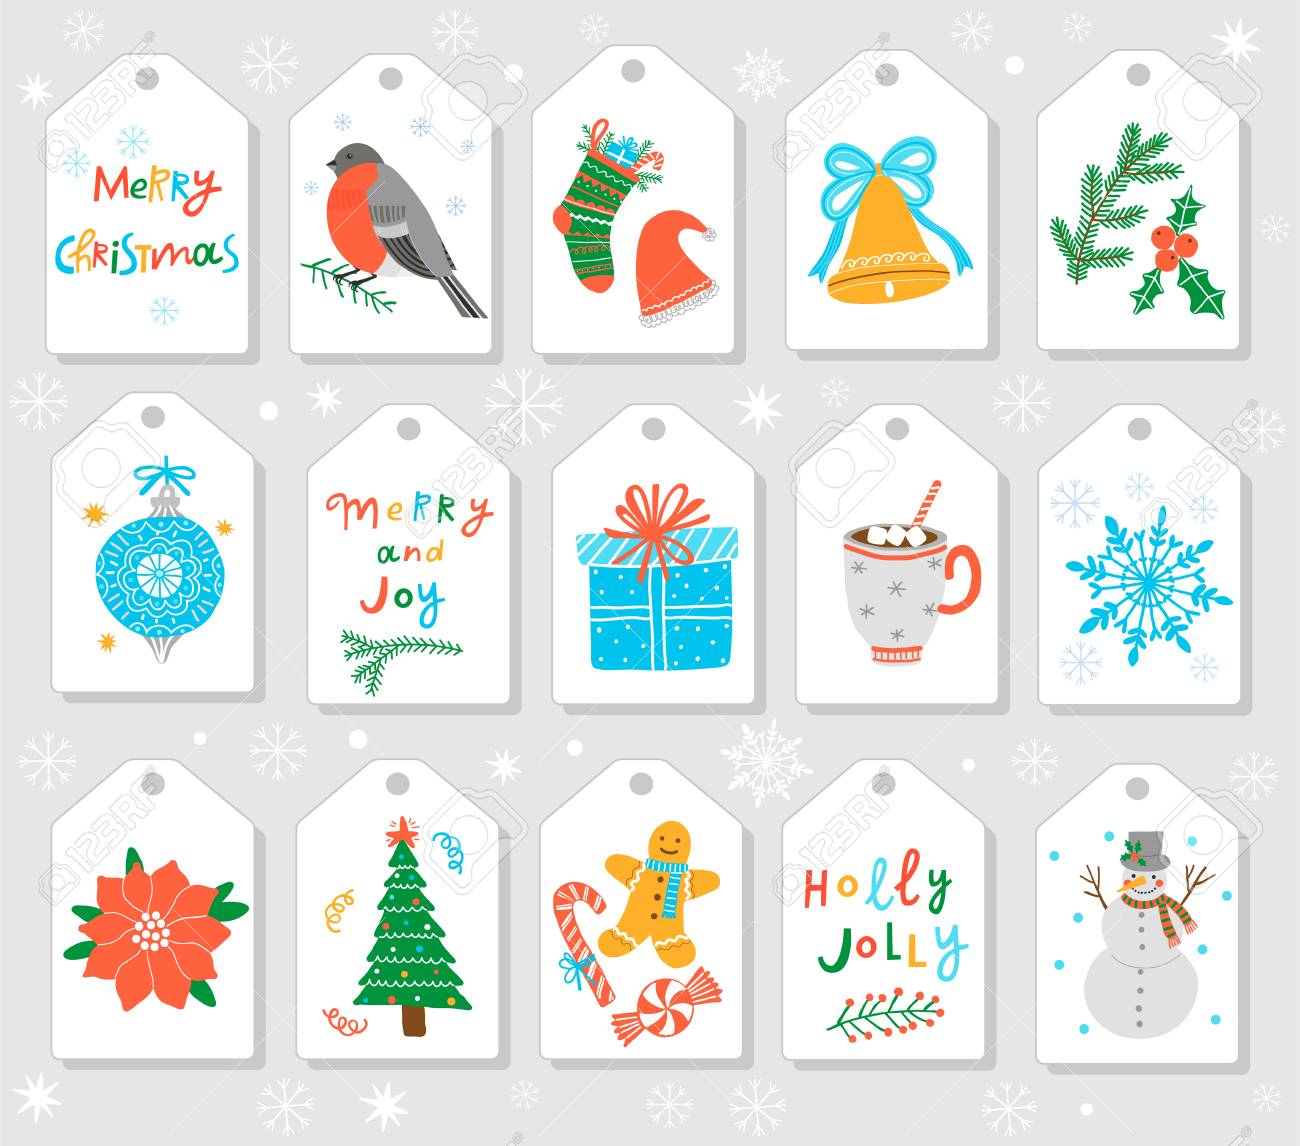 Christmas Gift Tags And Labels Vector Template Royalty Free Cliparts Vectors And Stock Illustration Image 90860438